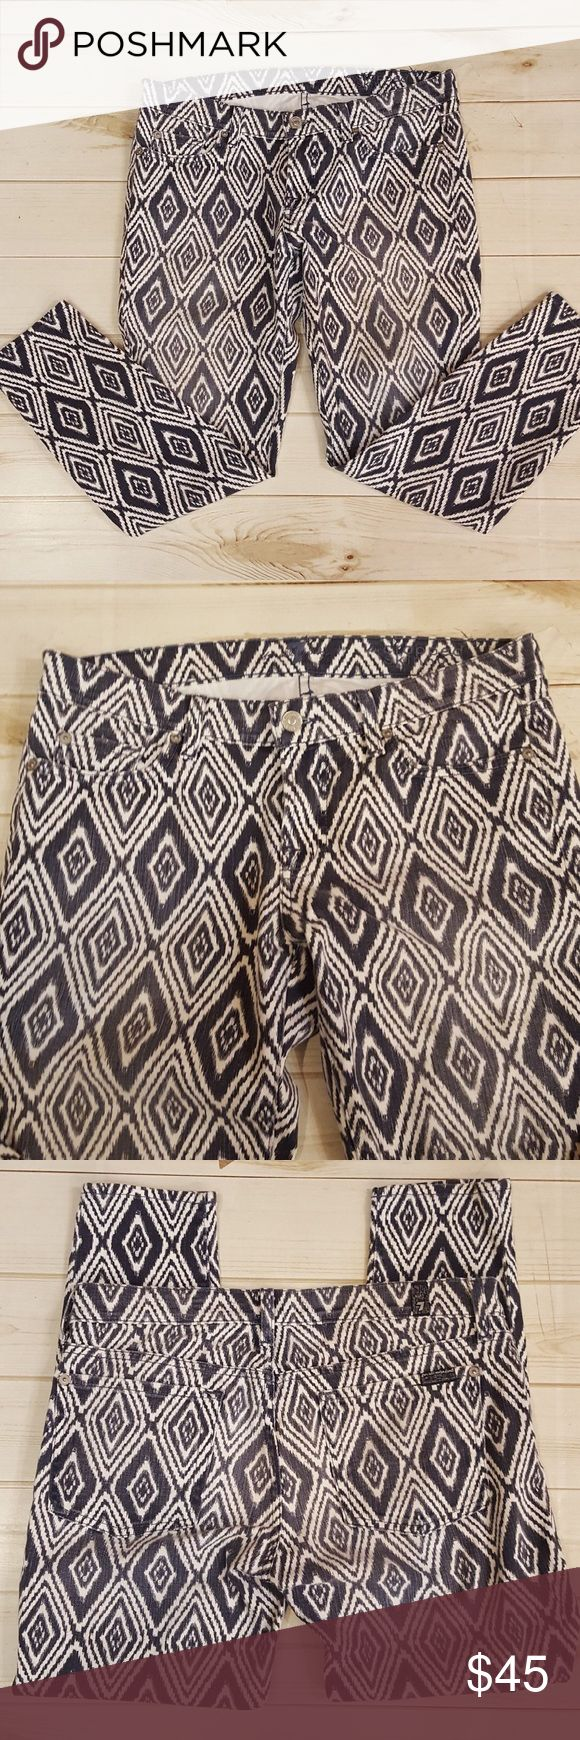 7 for all mankind women's pants! Size 29. Fun printed skinny jeans! Light navy and white! Good condition. (P223) 7 For All Mankind Jeans Skinny